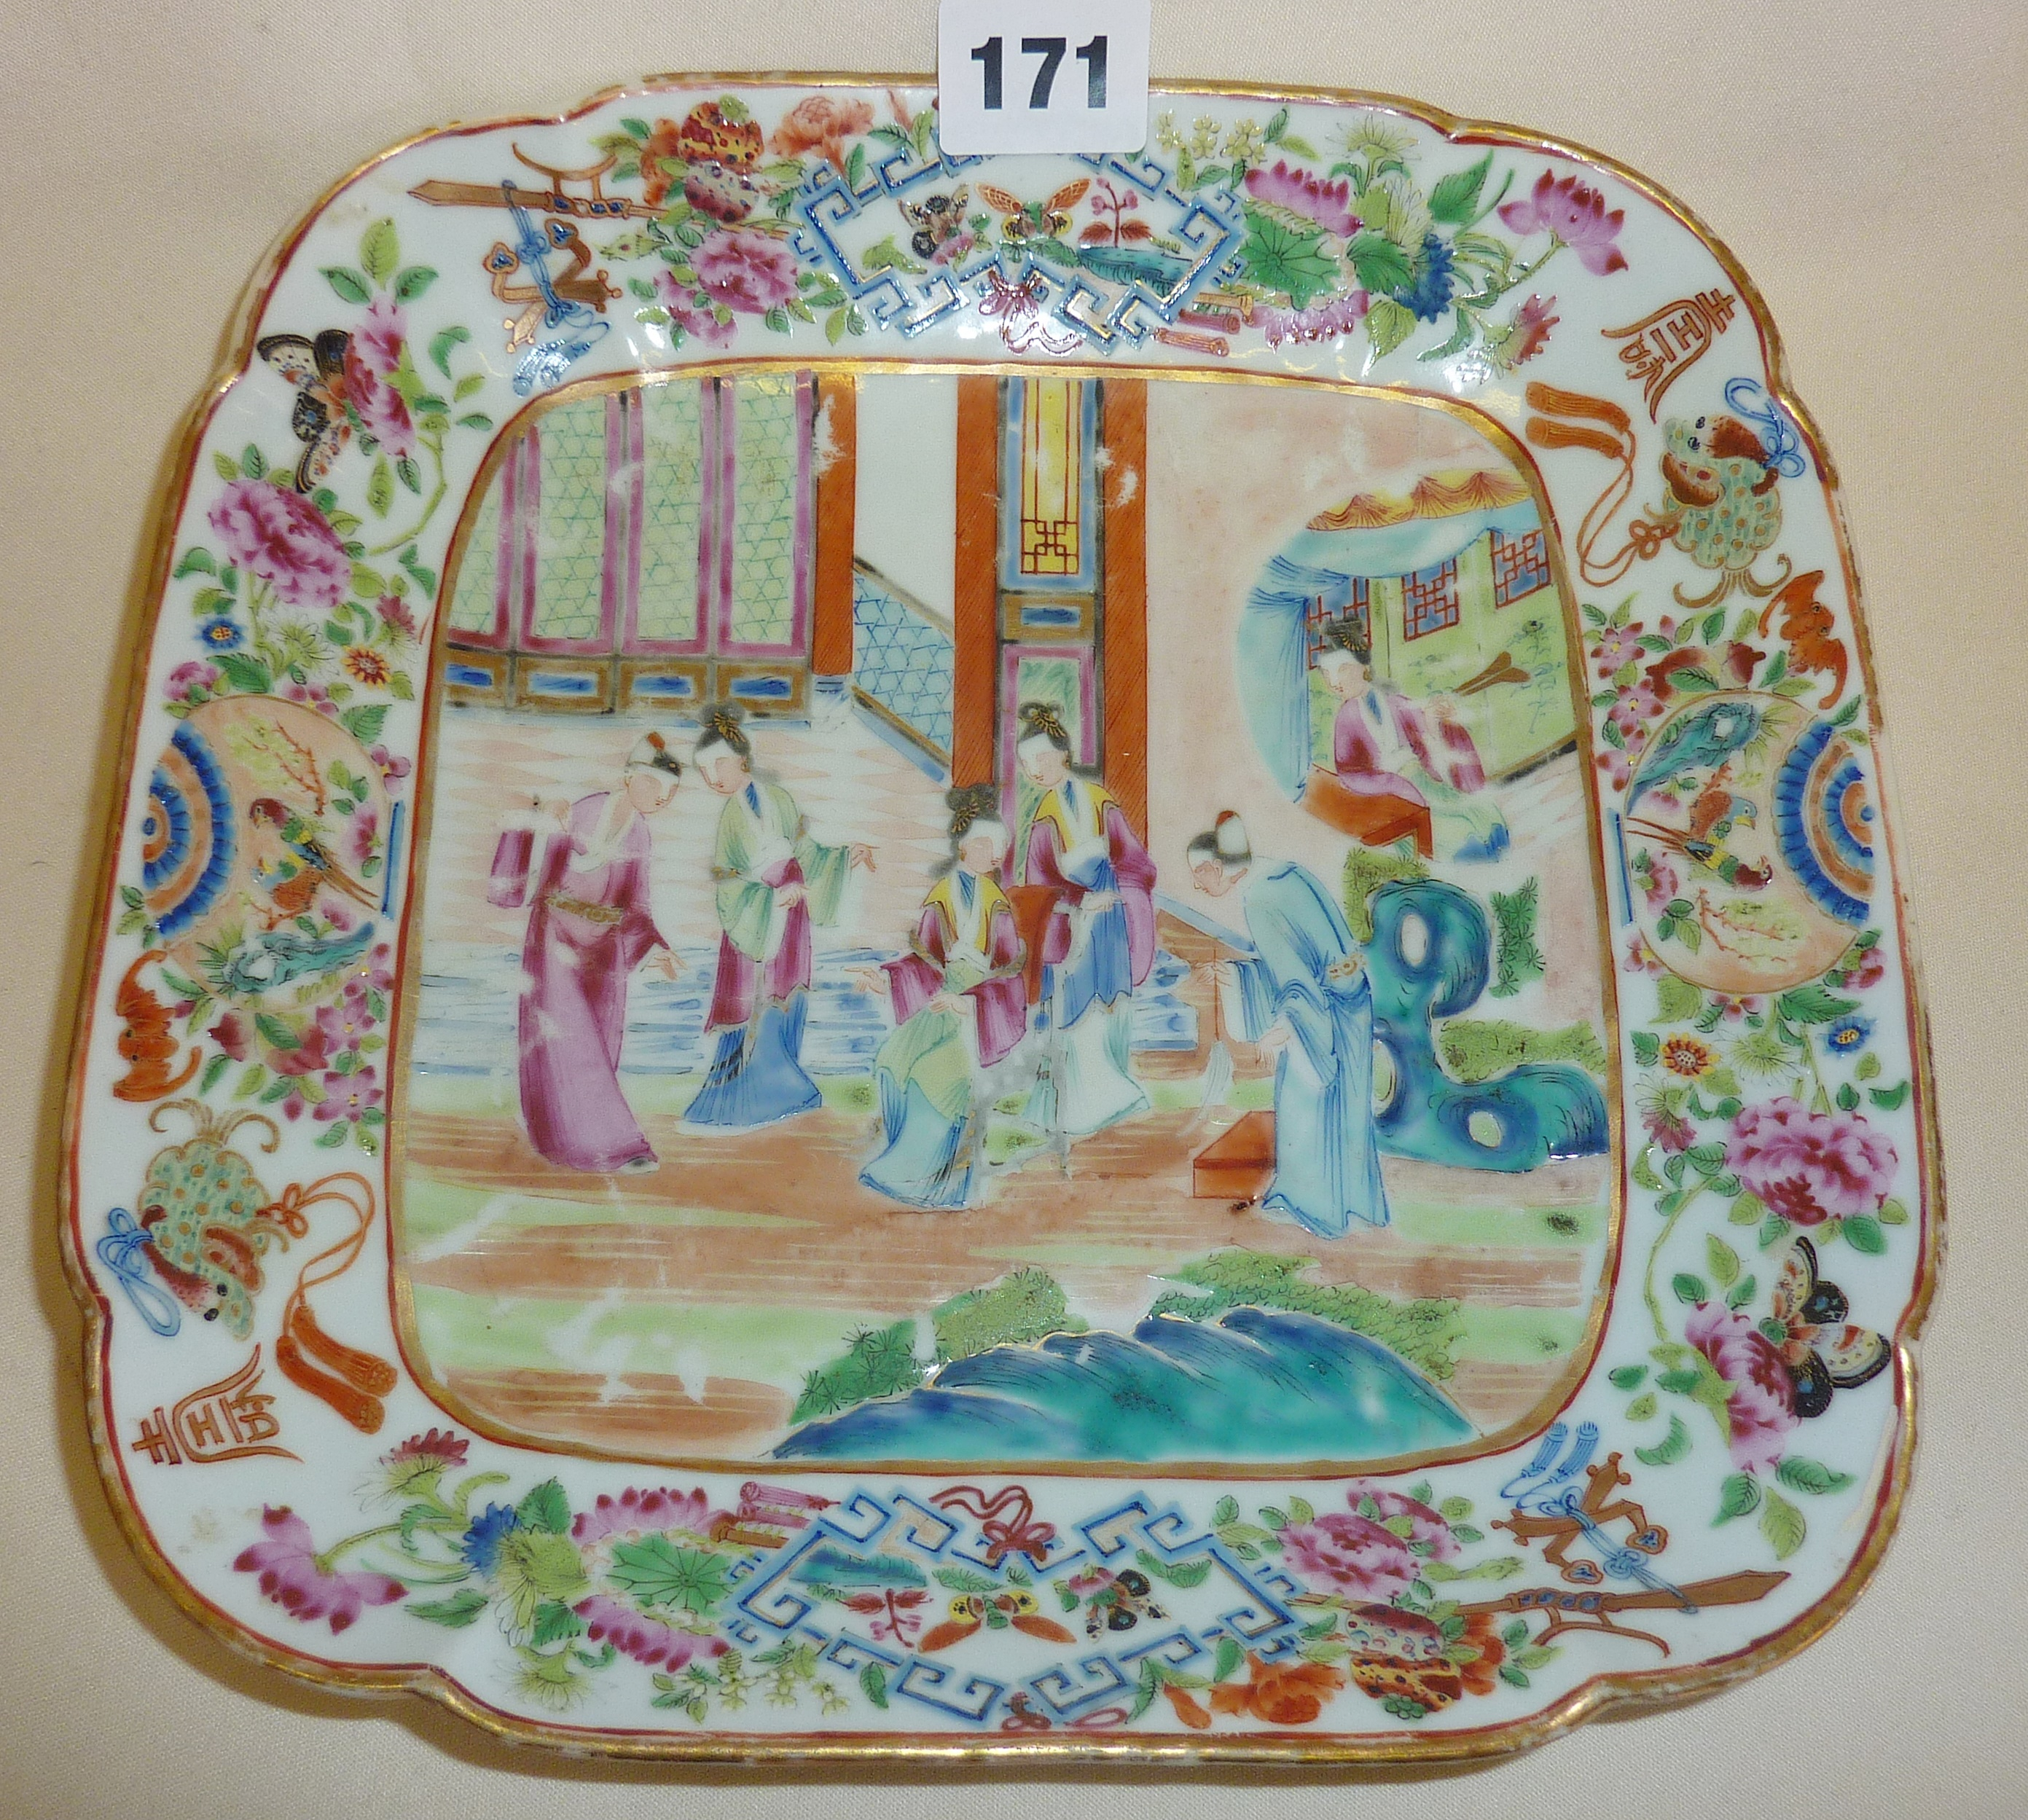 "Lot 171 - 19th century Canton porcelain square Chinese figures plate or dish, approx. 9.25"" wide"